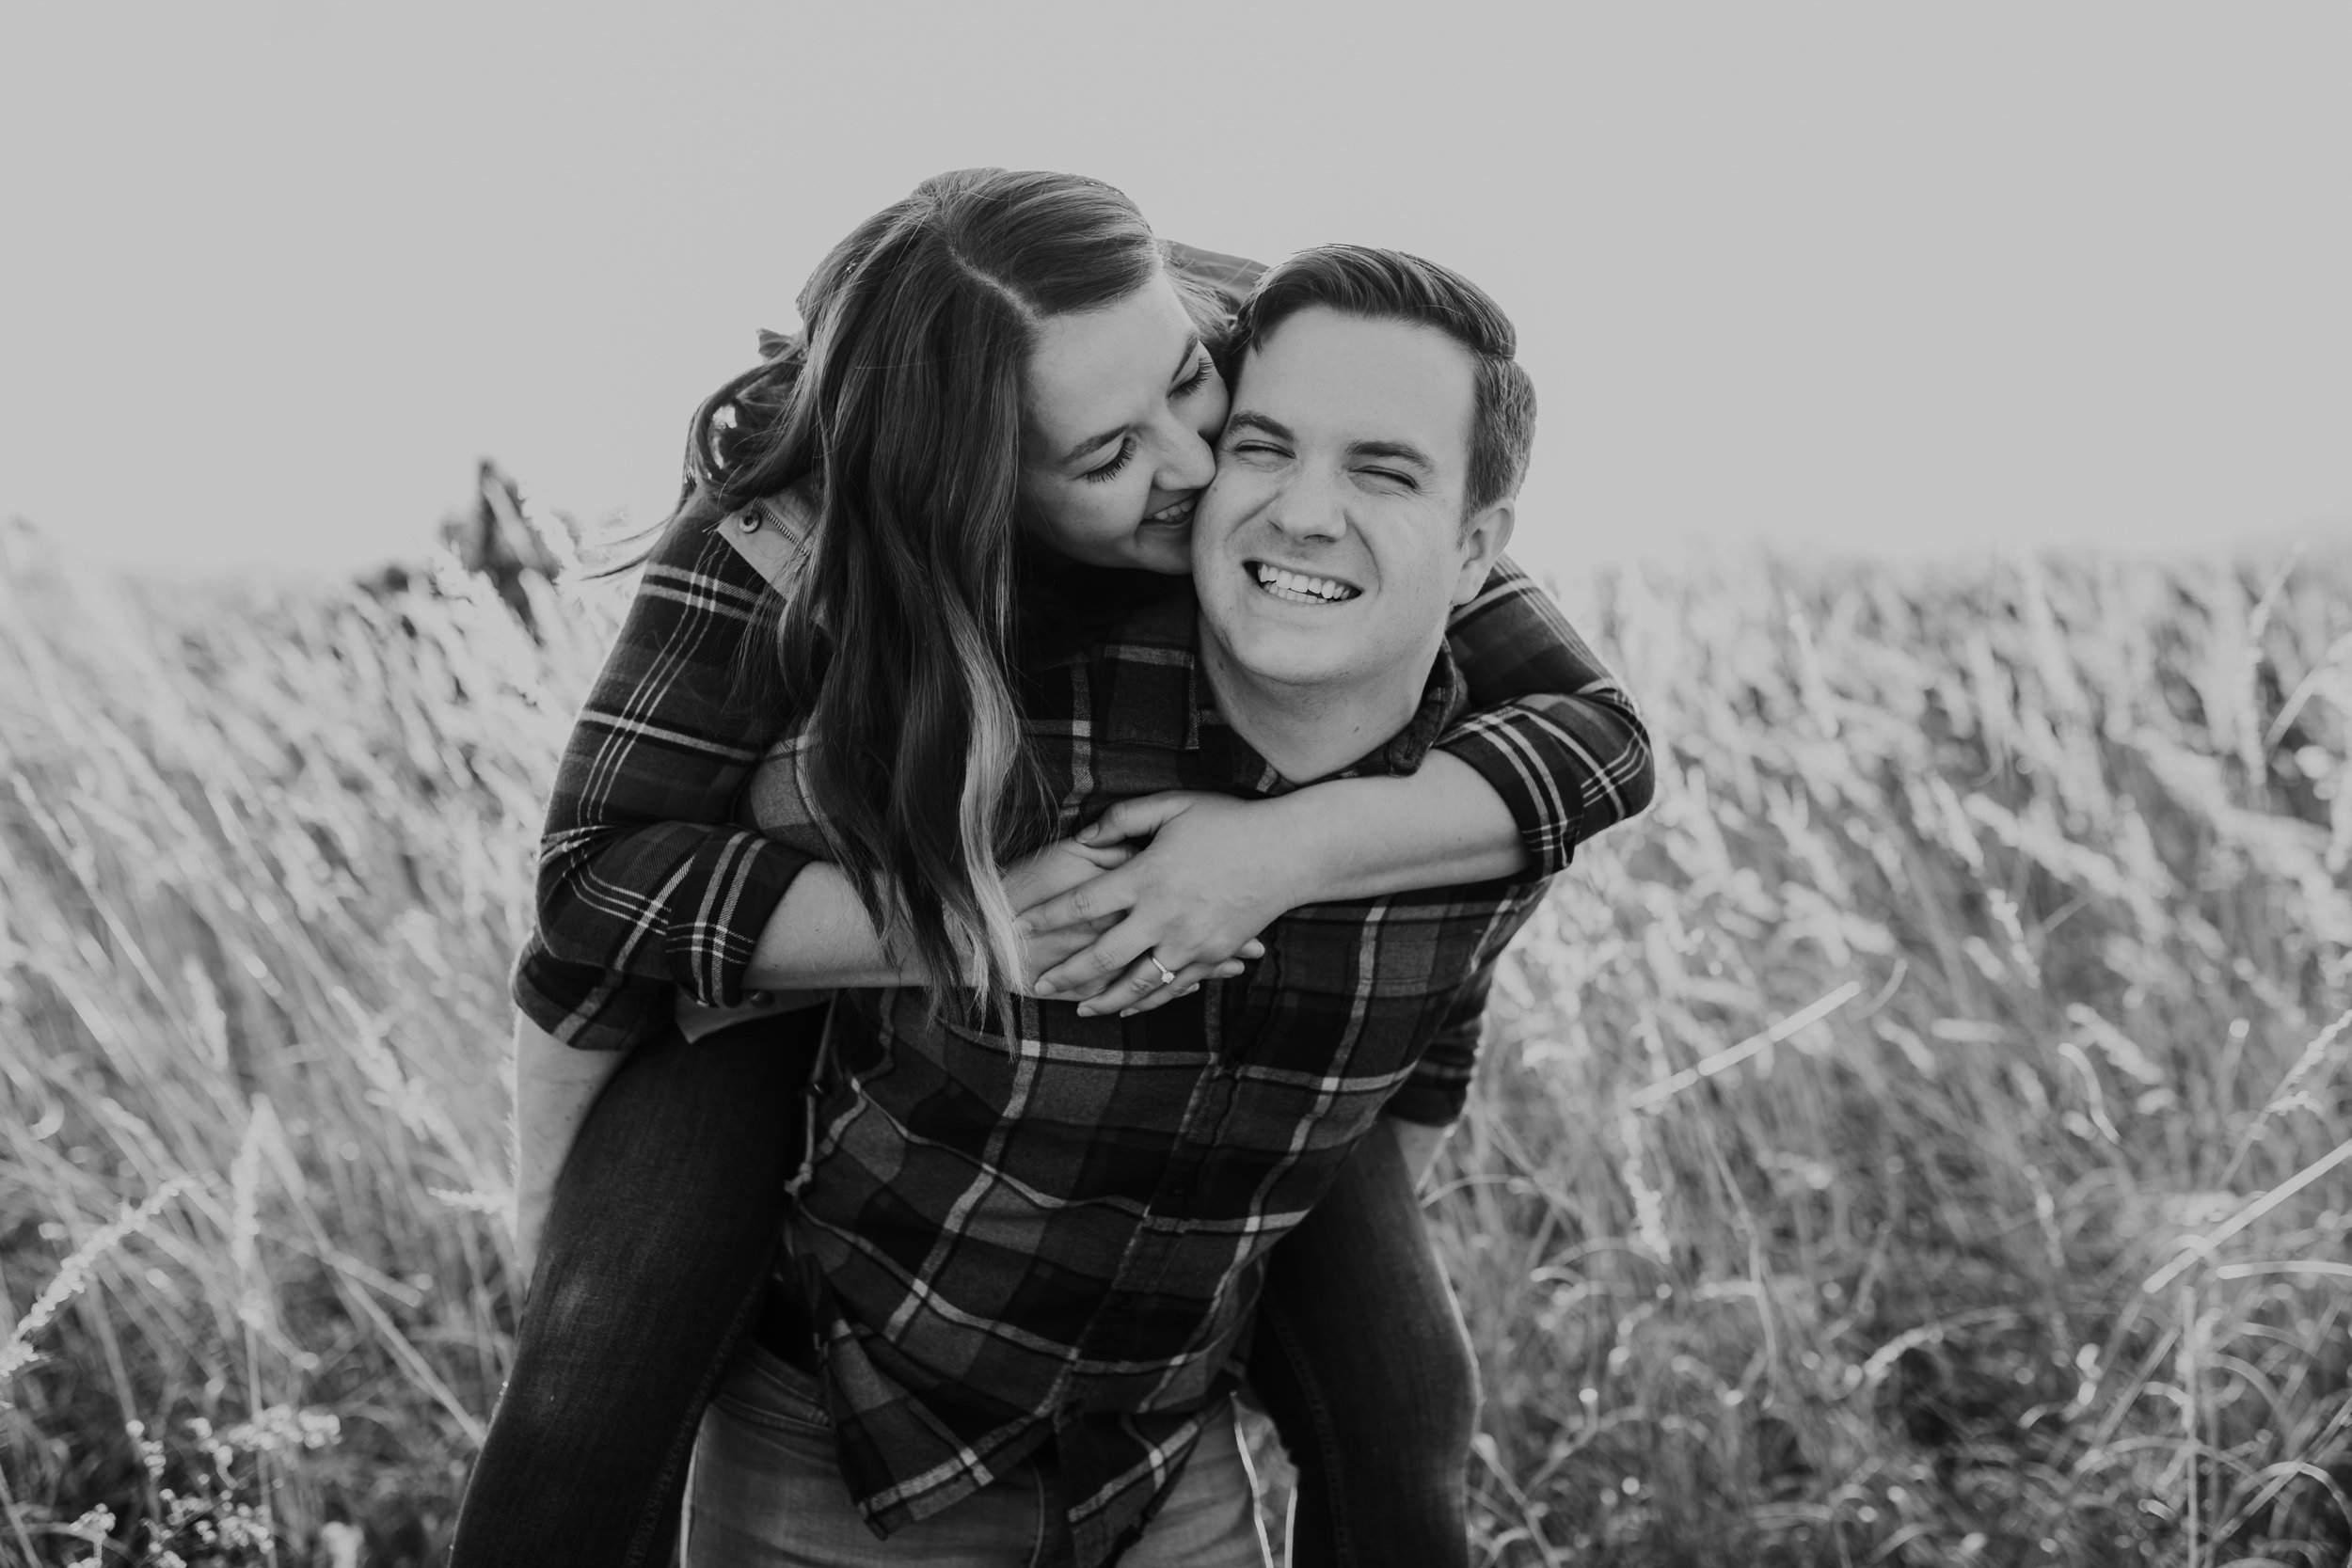 Katie & Adam - Engaged - Nathaniel Jensen Photography - Omaha Nebraska Wedding Photograper - Omaha Nebraska Engagement Session - Chalco Hills Engagement Session-55.jpg